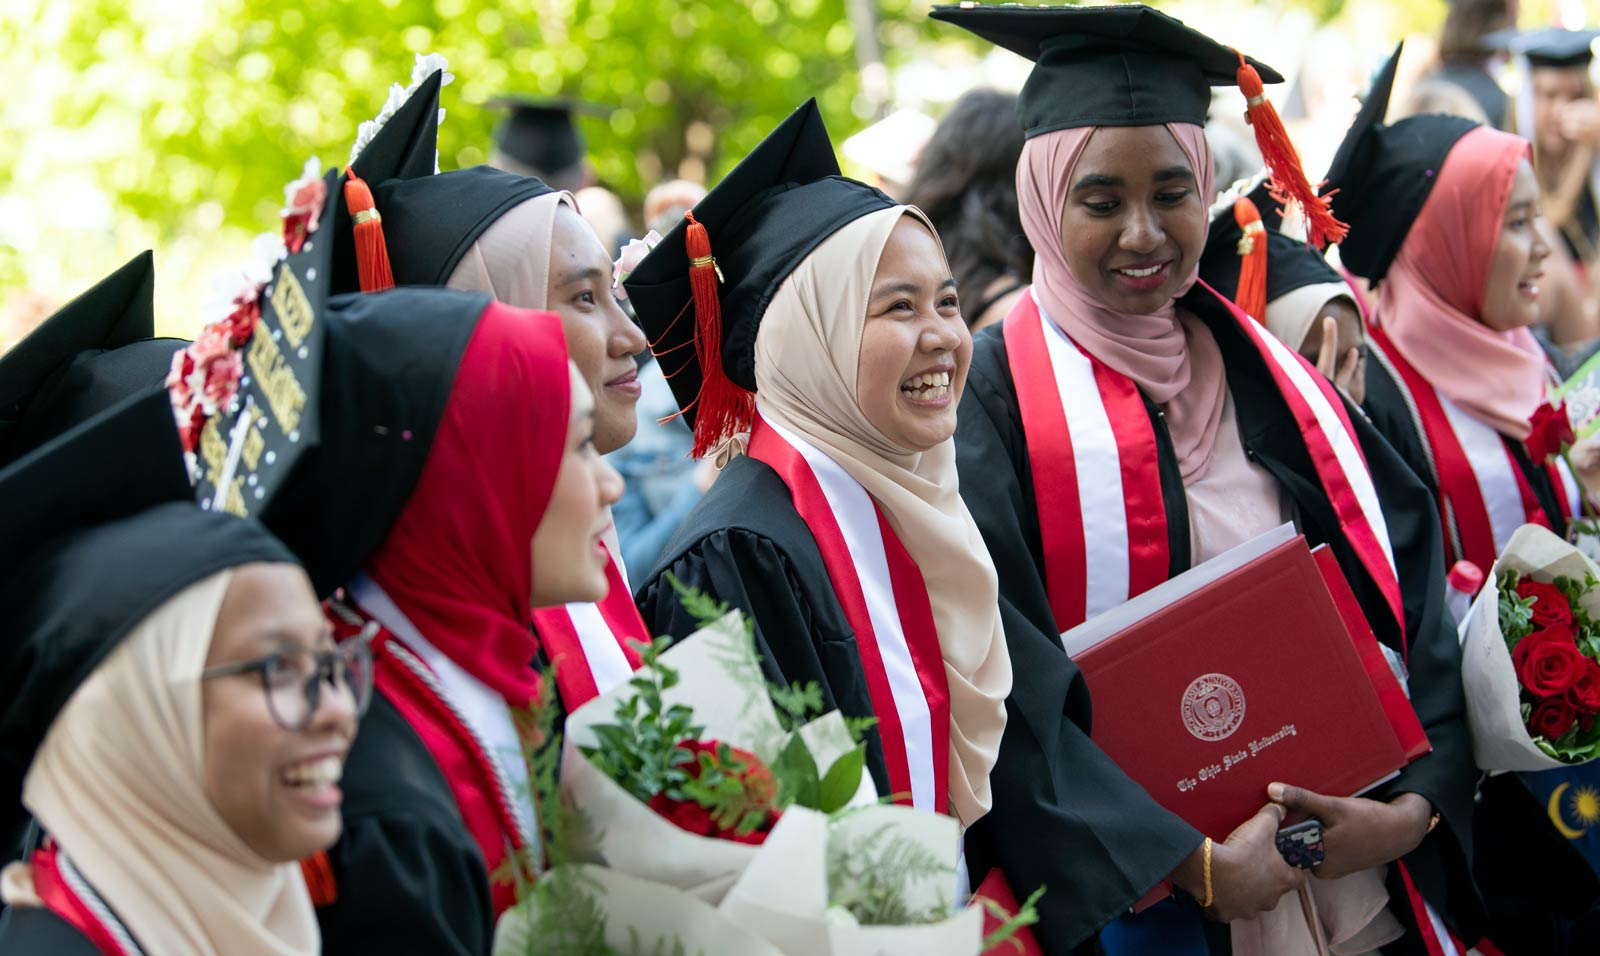 Ohio State students in hijabs smile during a Commencement ceremony.